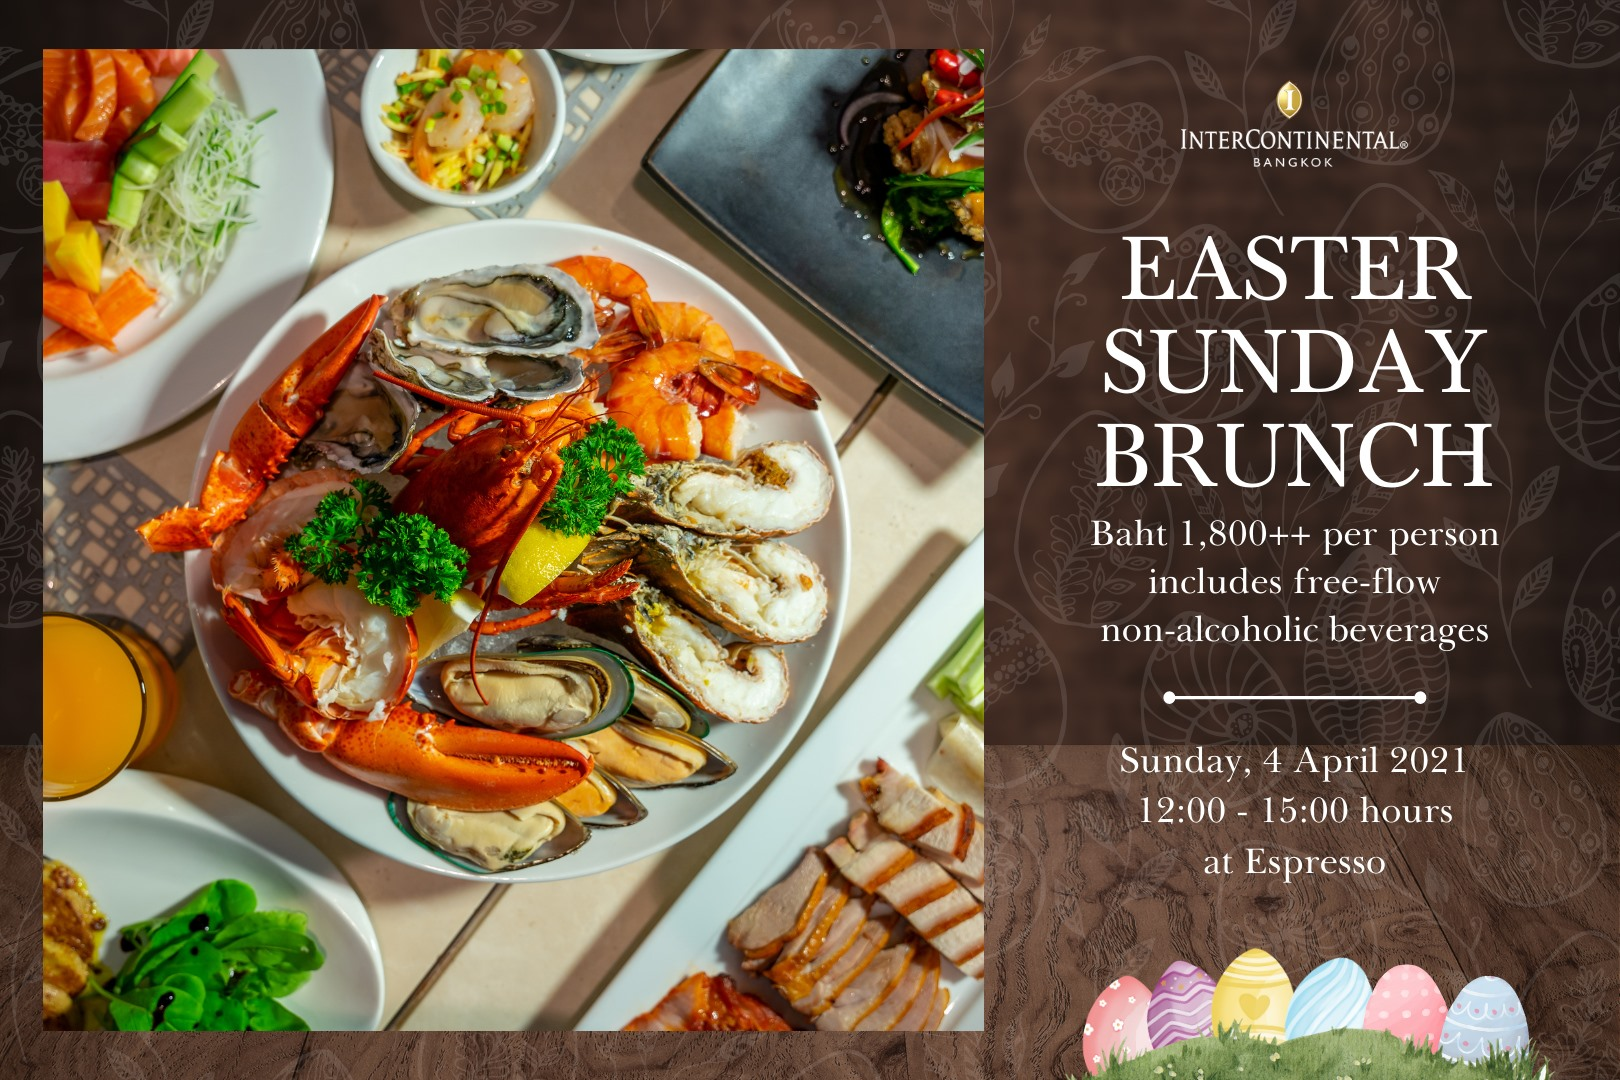 Easter Sunday Brunch at InterContientail Bangkok